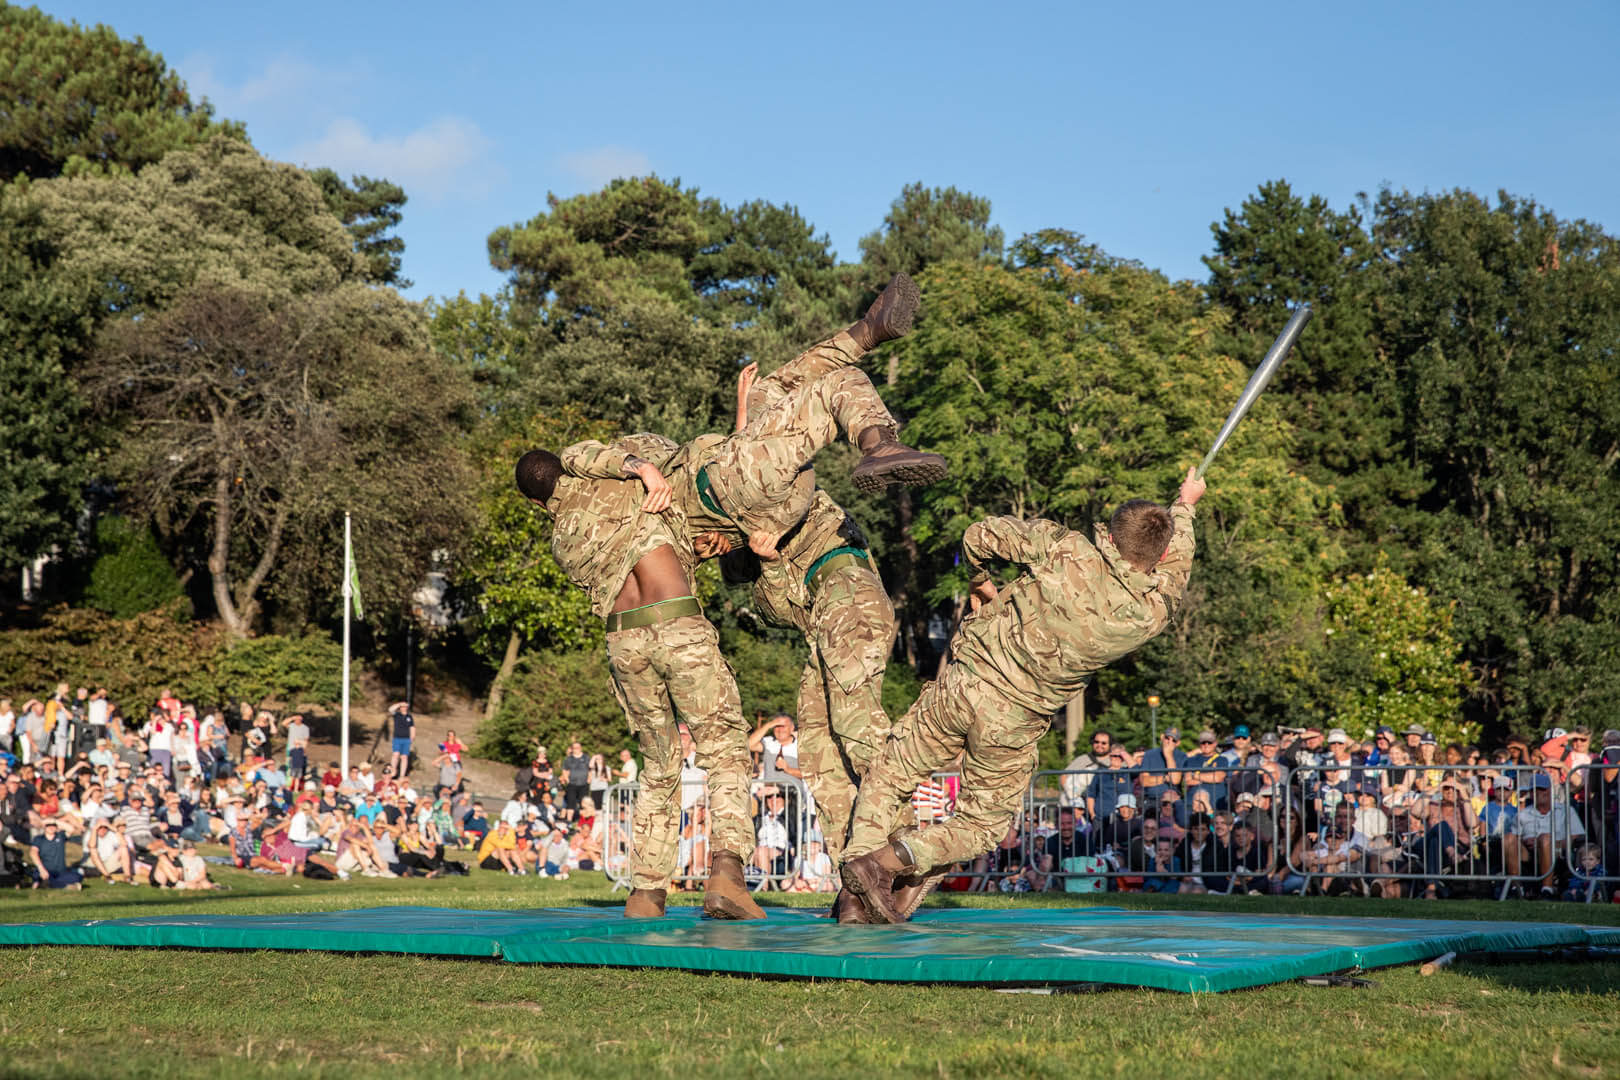 Three marine soldiers putting on a fighting display for the crowds in the gardens